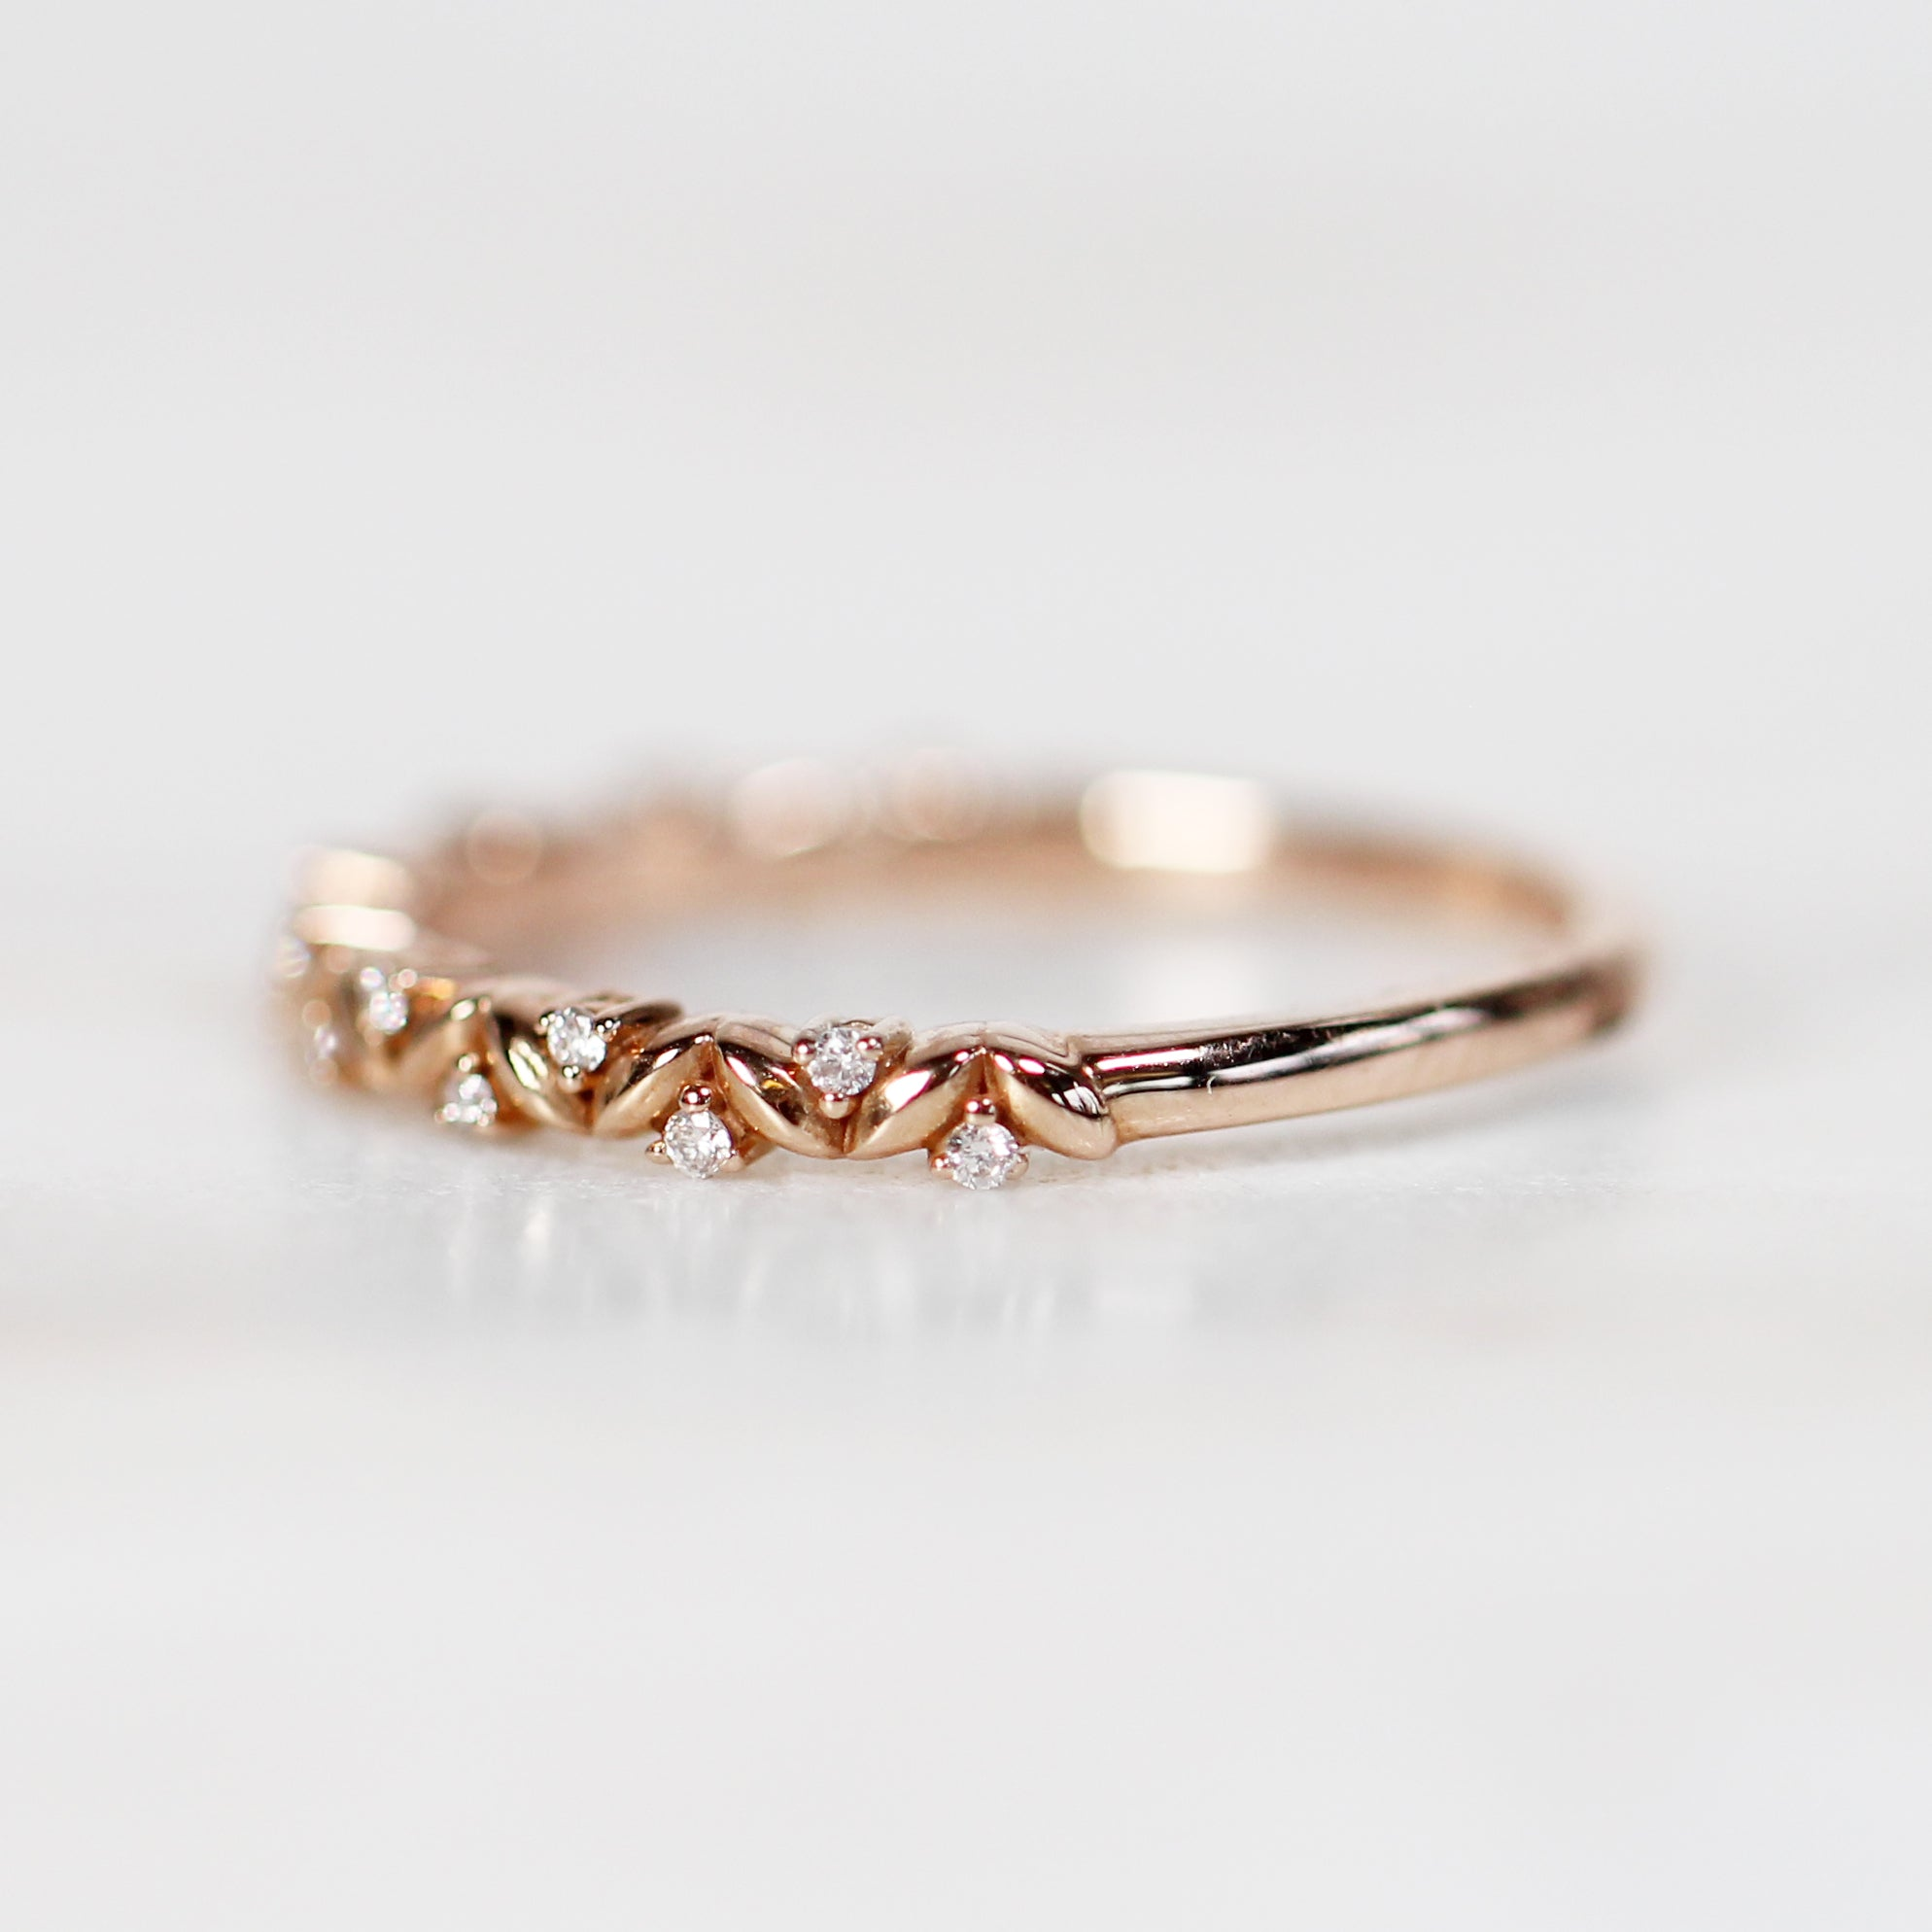 Brynn - Natural Floral Leaf Diamond Wedding or Stacking Ring Band - Salt & Pepper Celestial Diamond Engagement Rings and Wedding Bands  by Midwinter Co.